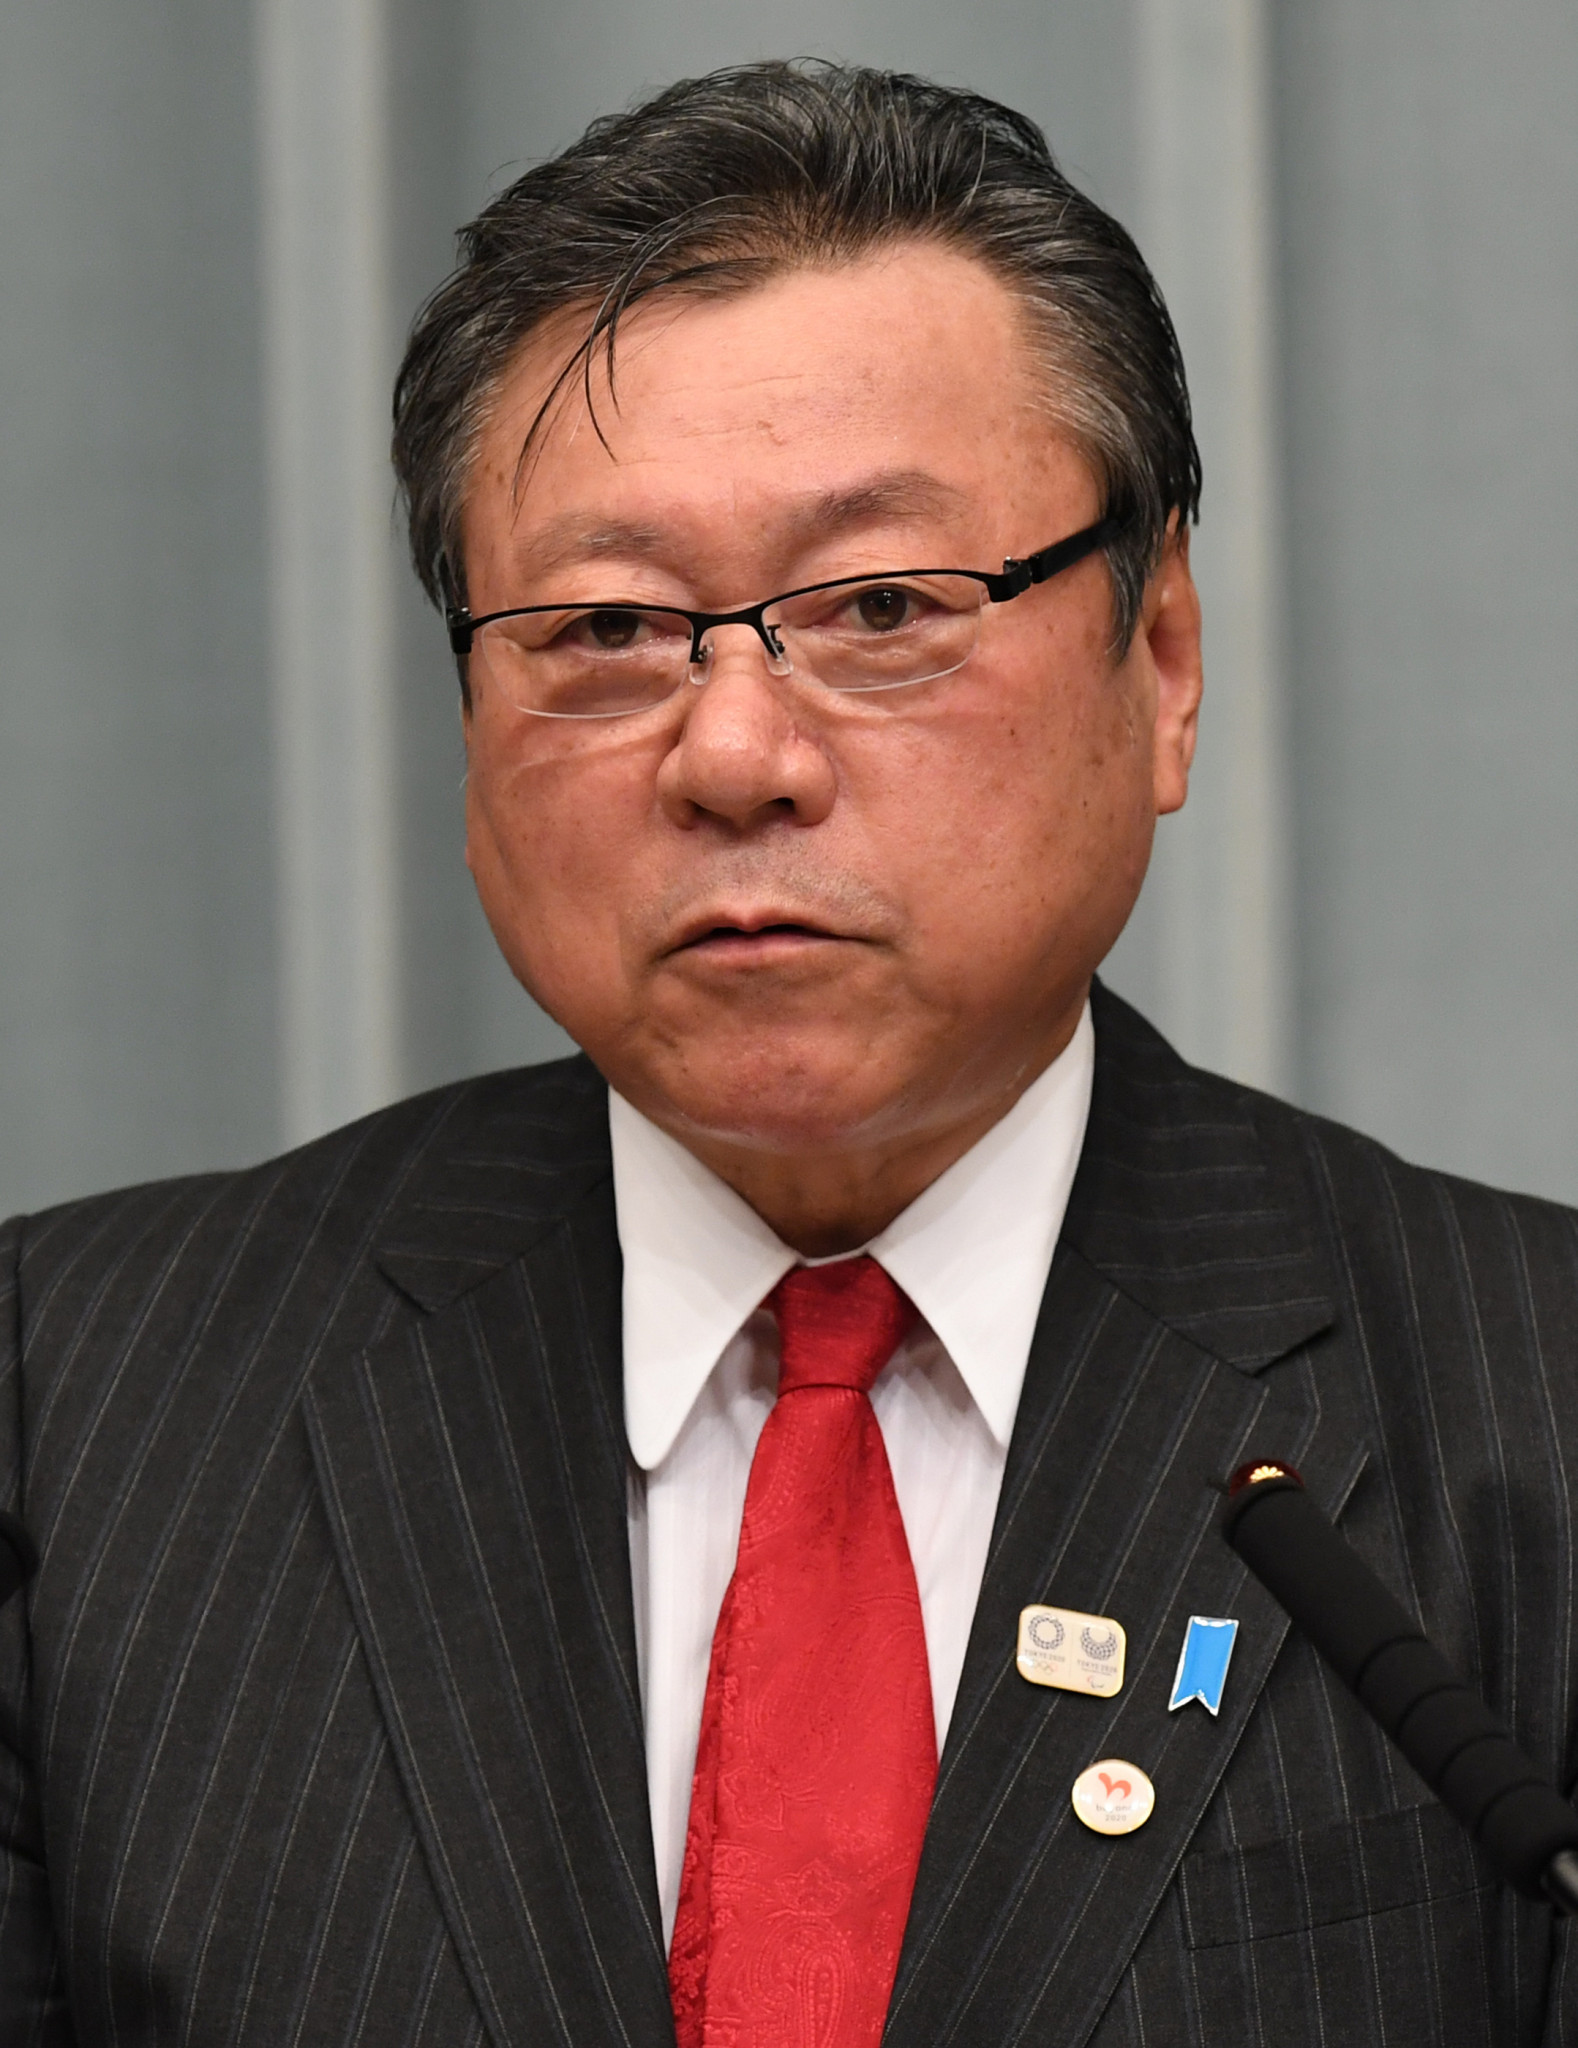 Yoshitaka Sakurada, the Minister responsible for cyber-security at Tokyo 2020, told Parliament he has never used a computer ©Getty Images